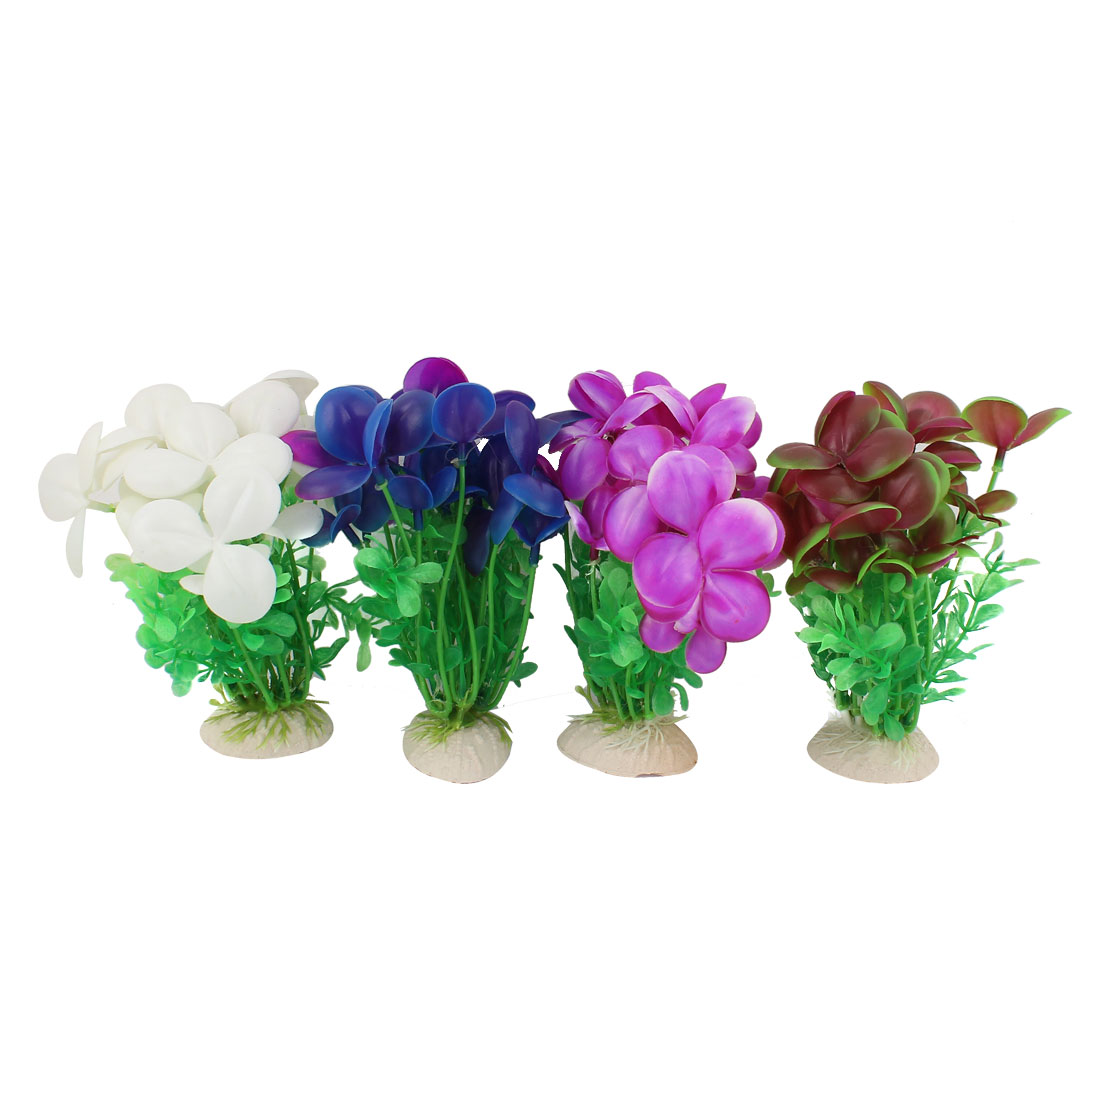 4pcs Aquarium Decor Fish Tank Artificial Grass Plants Ornaments